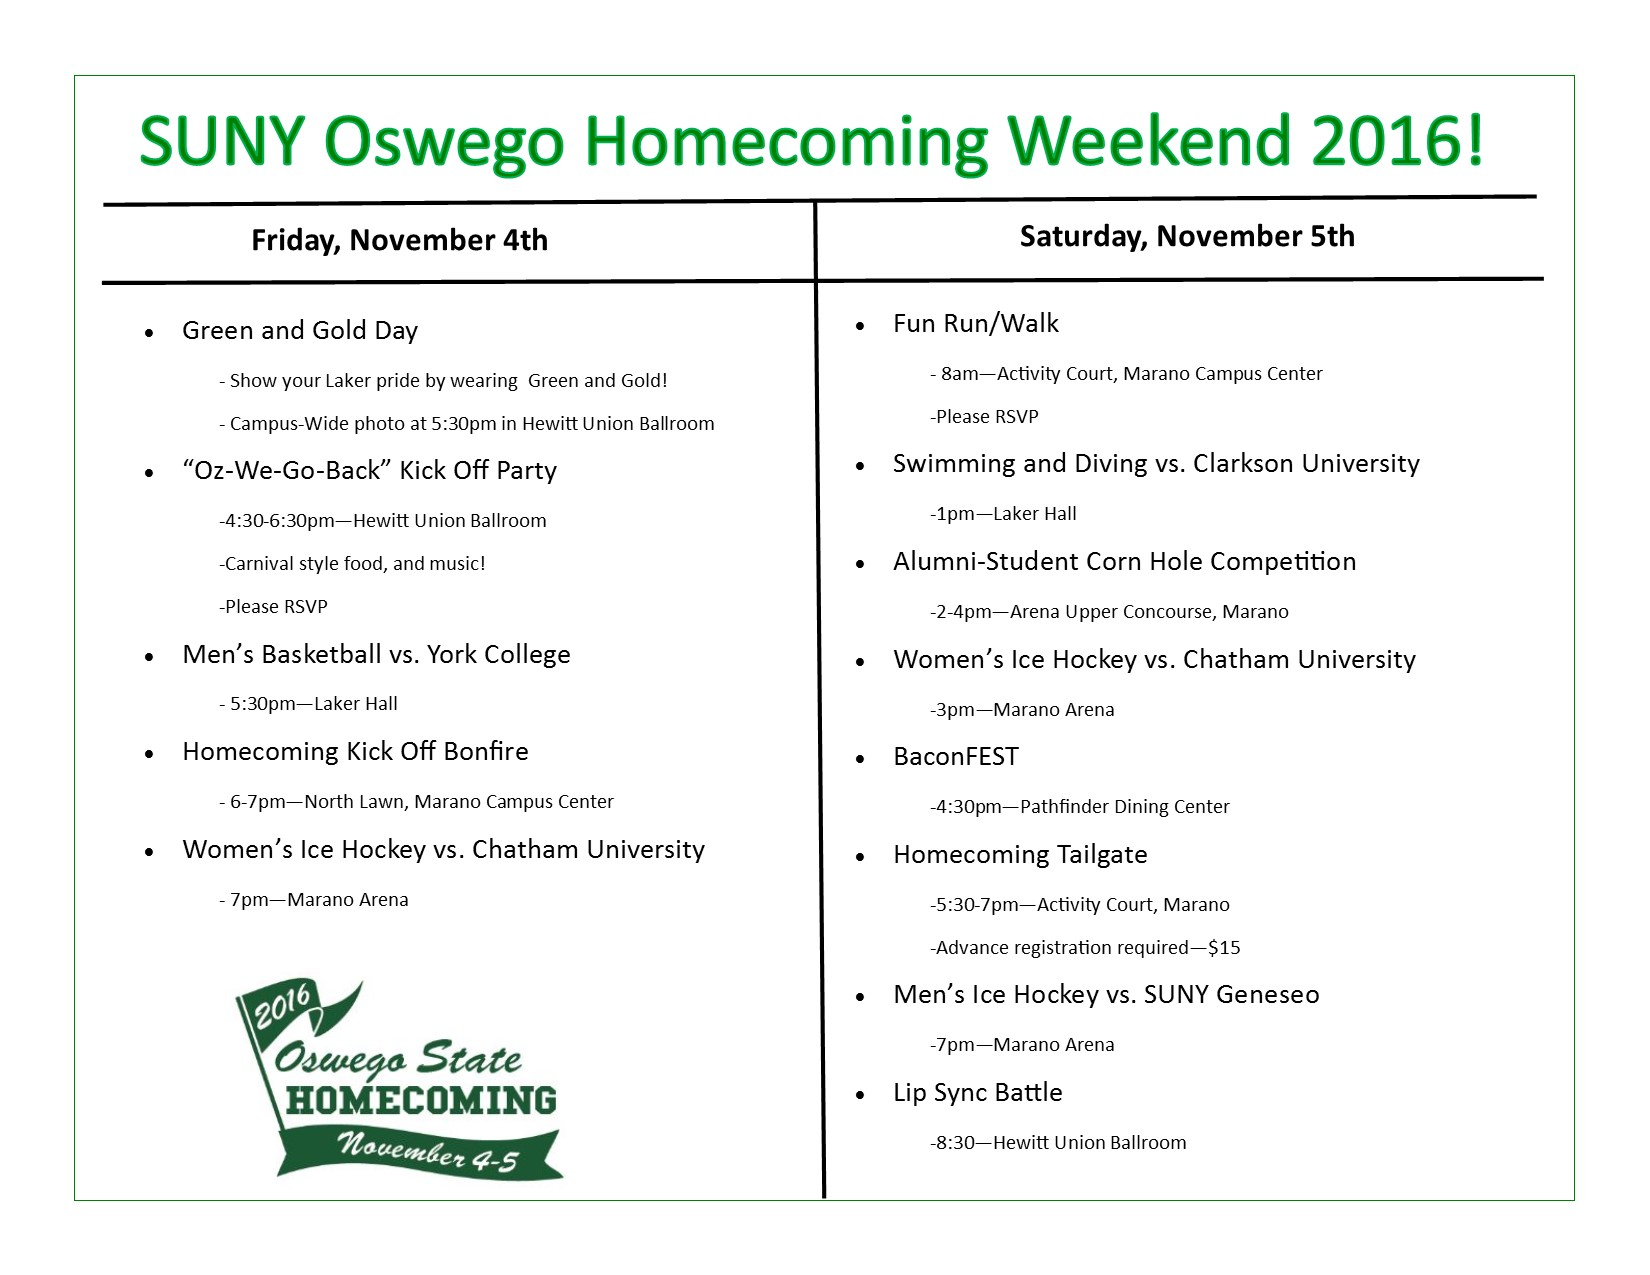 Homecoming Weekend